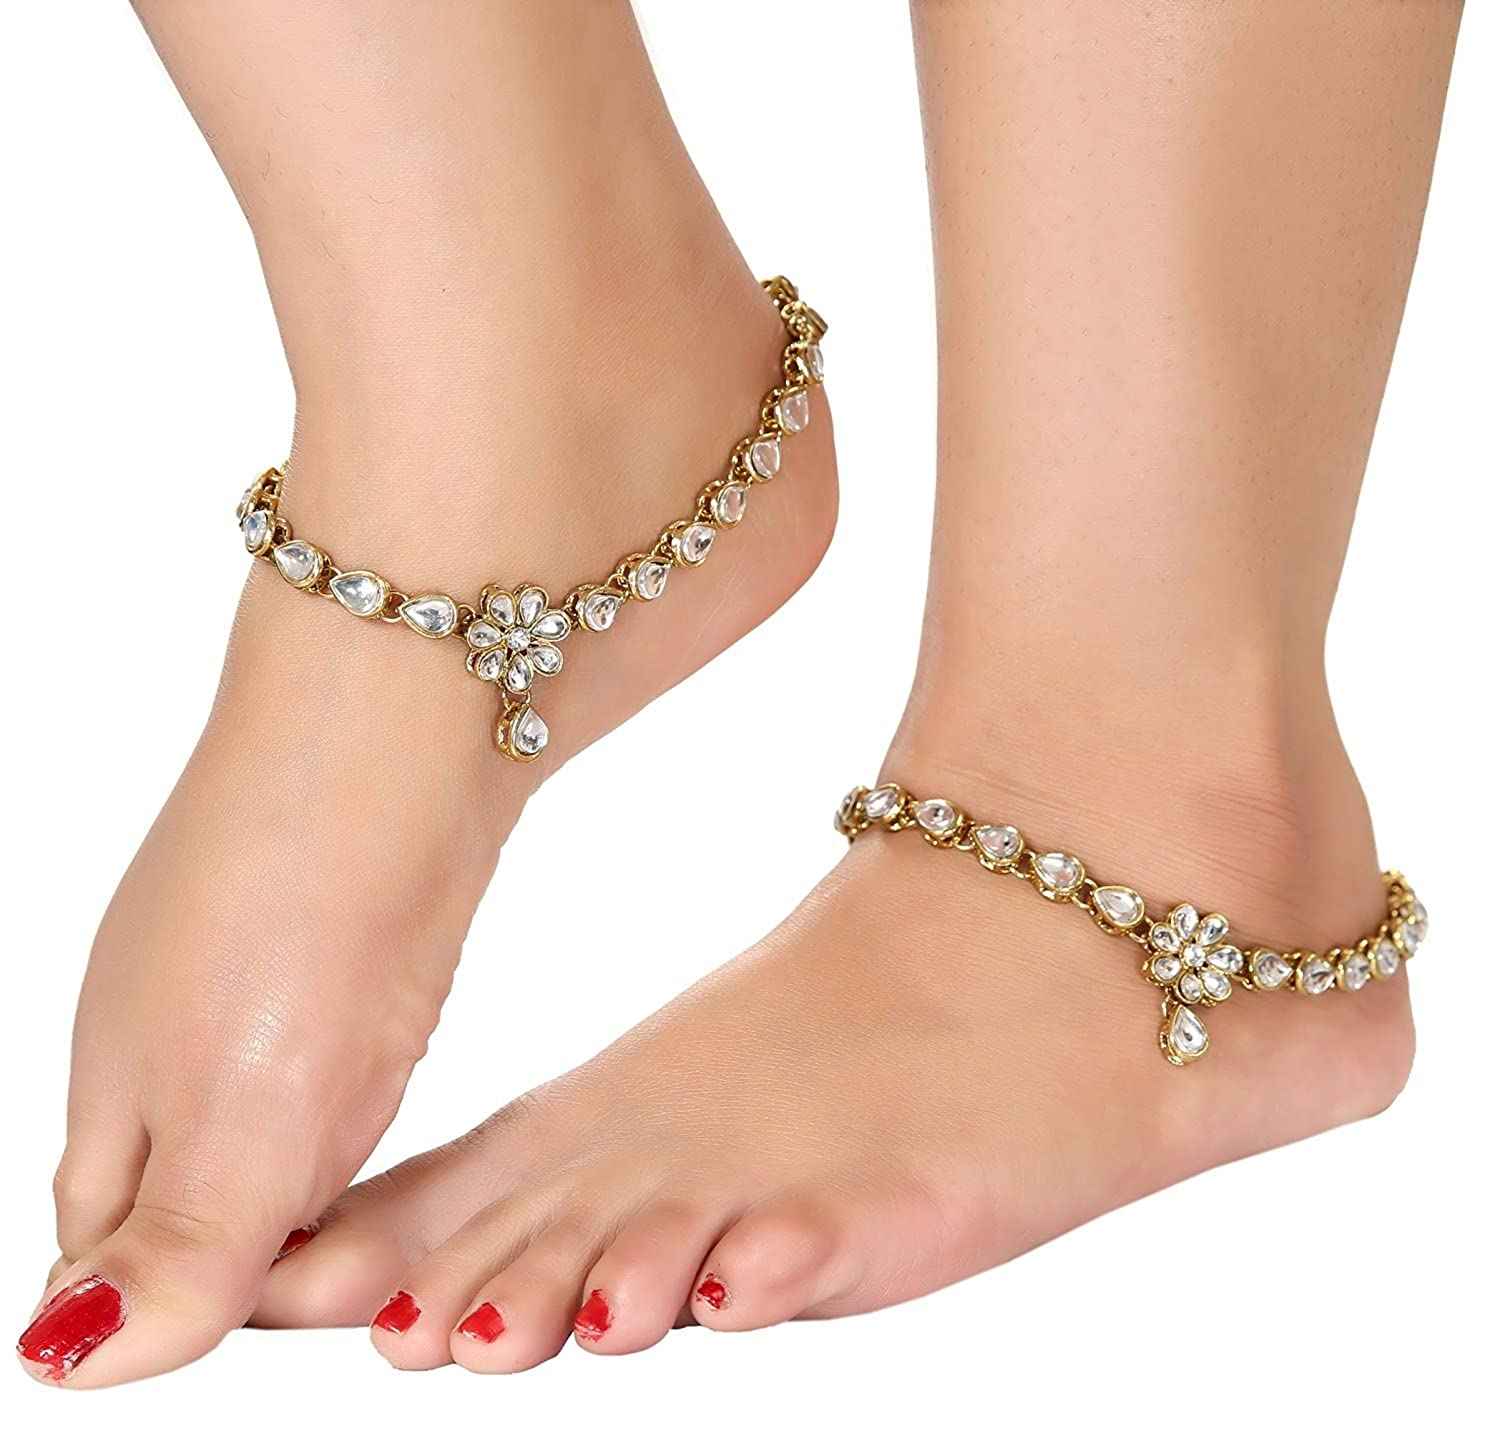 anklets anklet for beach gold tassels silver rbvajfllxpaai women little vintage leaf jewelry chain online bracelet foot product store fashion summer